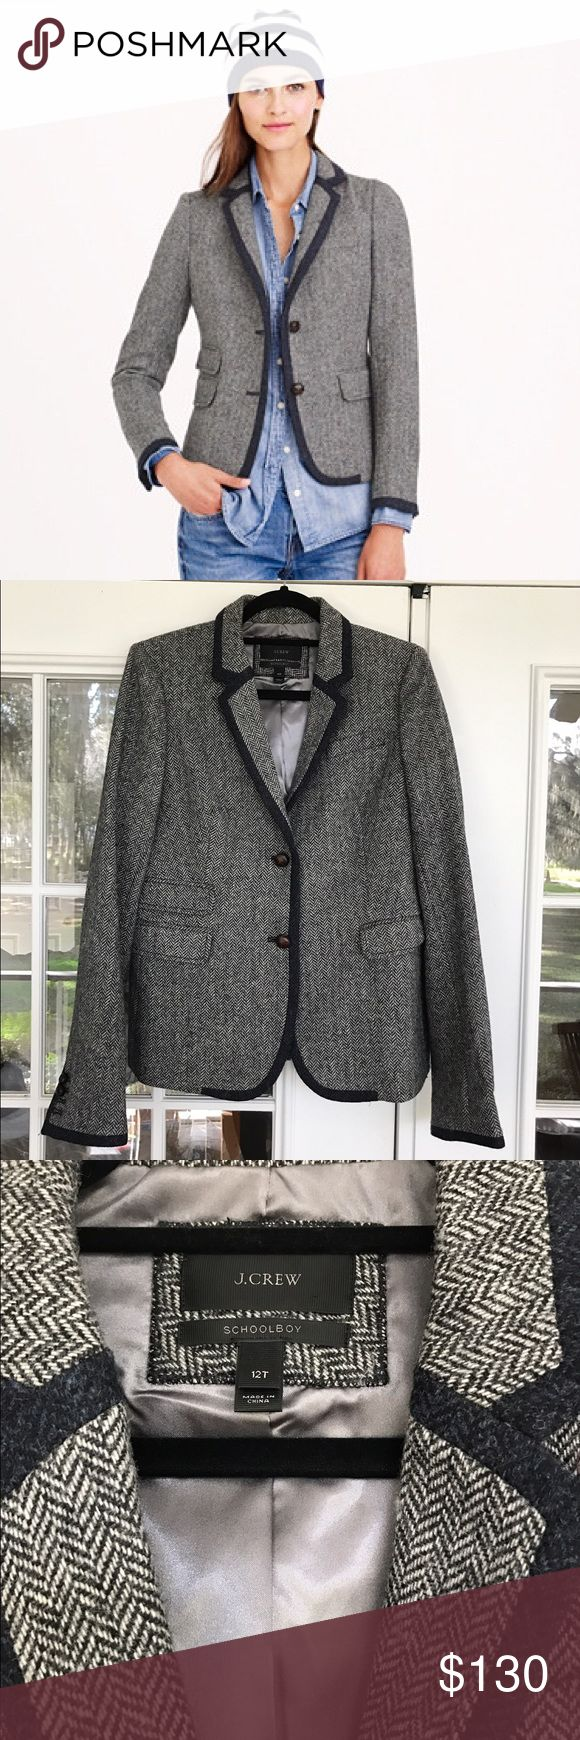 """Adorable J.crew school boy tipped blazer 12T Adorable J.crew school boy tipped blazer 12T * Tailored for a fitted look. Body length: 26 1/4"""". * Sleeve length: 33 1/2"""", hits at hip. Slim and slightly shrunken, jcrew'a  version of the classic boarding-school blazer w/ bespoke-inspired details like a ticket pocket & a notched lapel. * Wool, Notch collar with felt undercollar, Functional buttons at cuffs, Flap pockets, ticket pocket, Lined. * ItemB0806. - in EUC zero signs of wear (only worn…"""